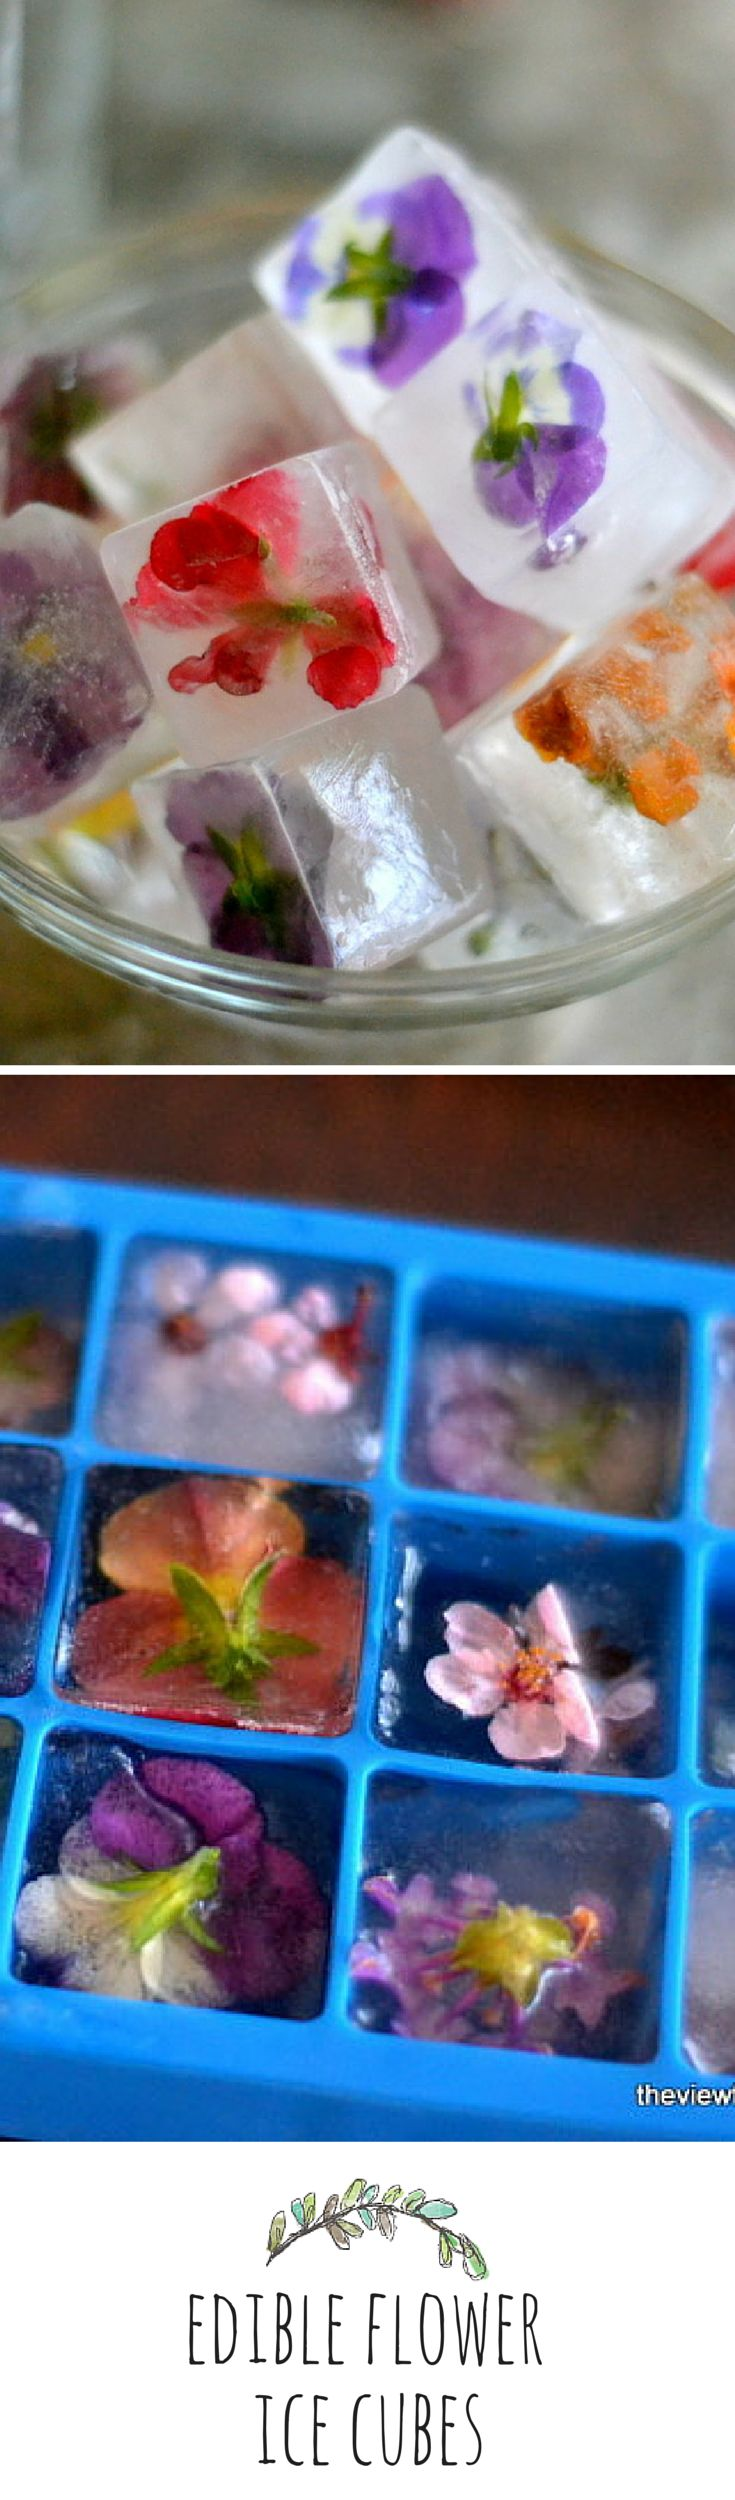 These edible flower ice cubes are so cute! Would be the perfect addition to a bridal or baby shower.